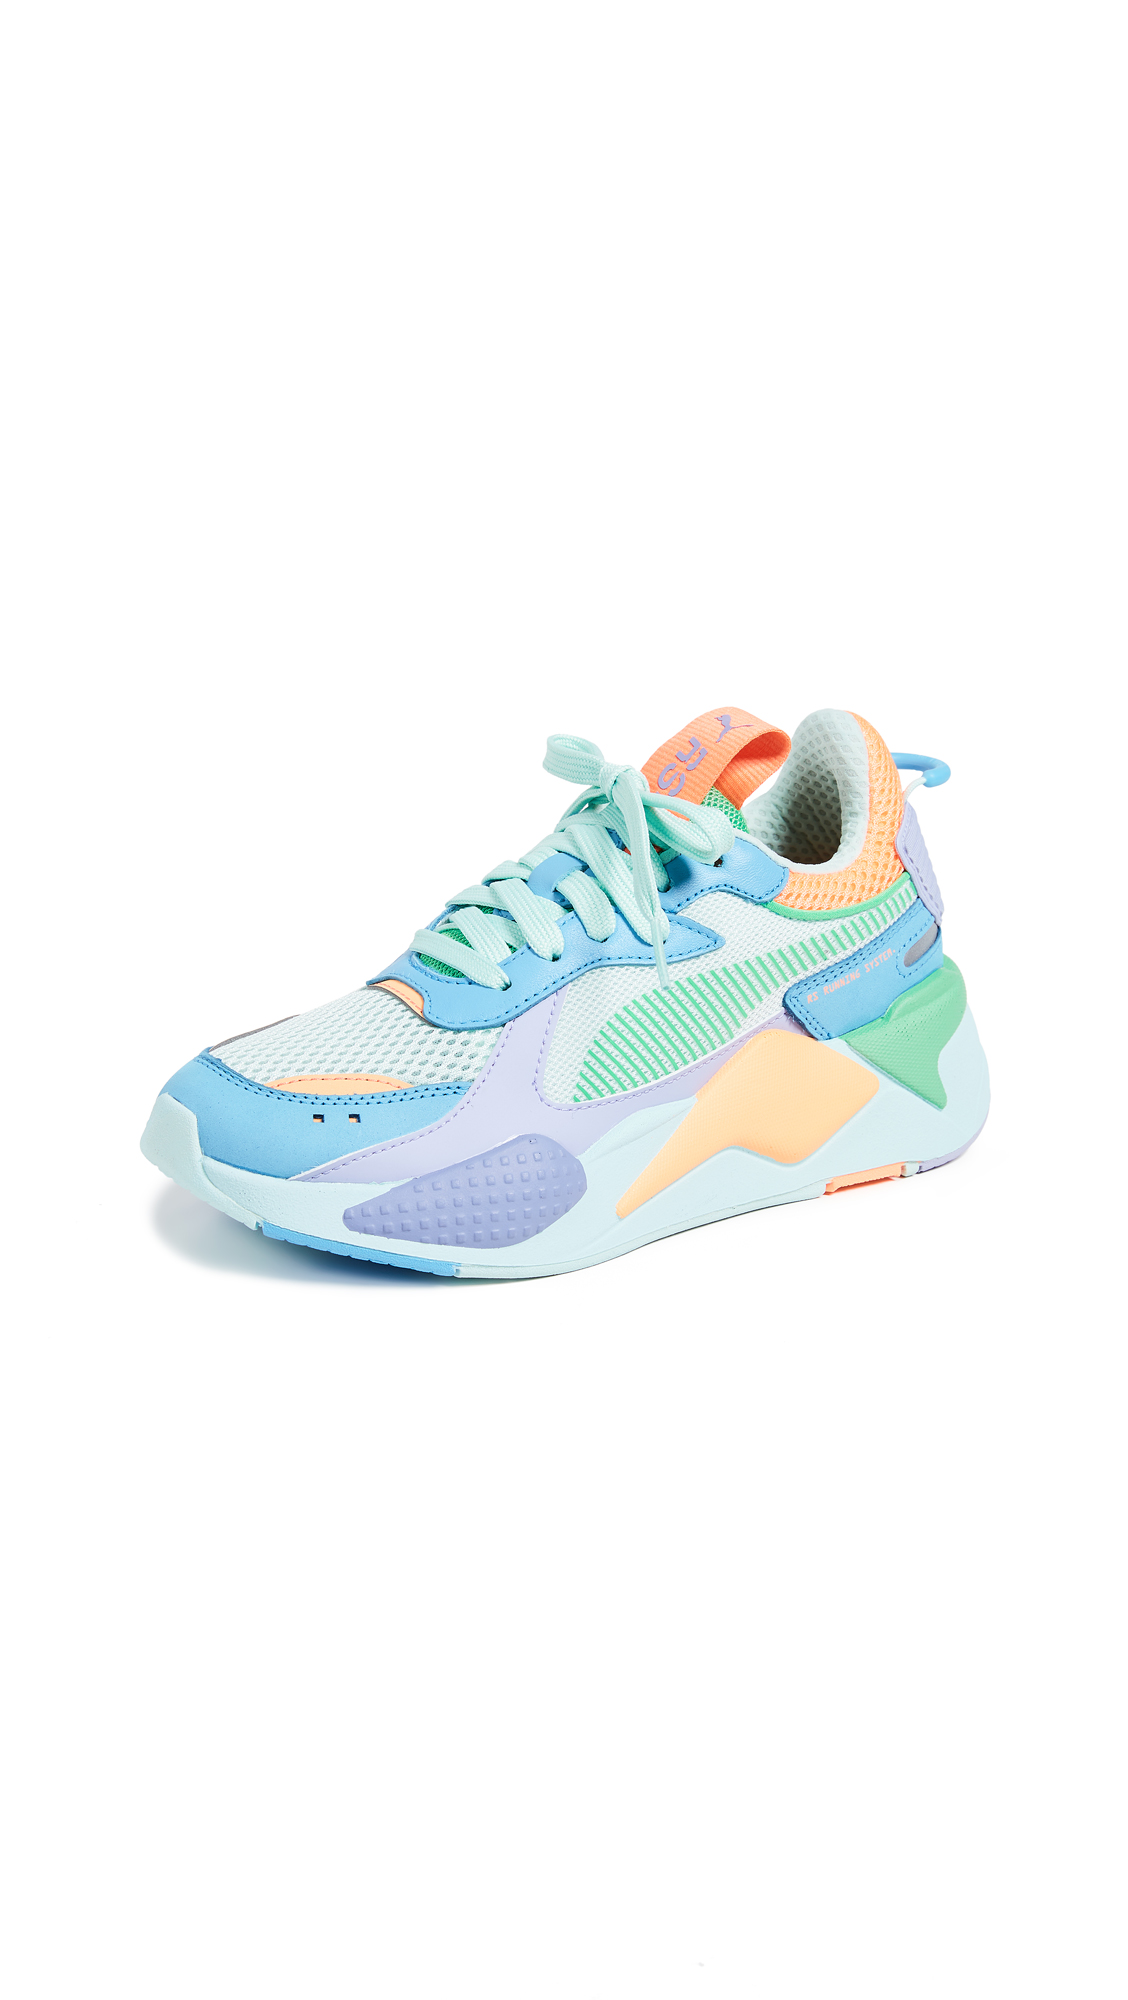 PUMA RS-X Colorblock Sneakers